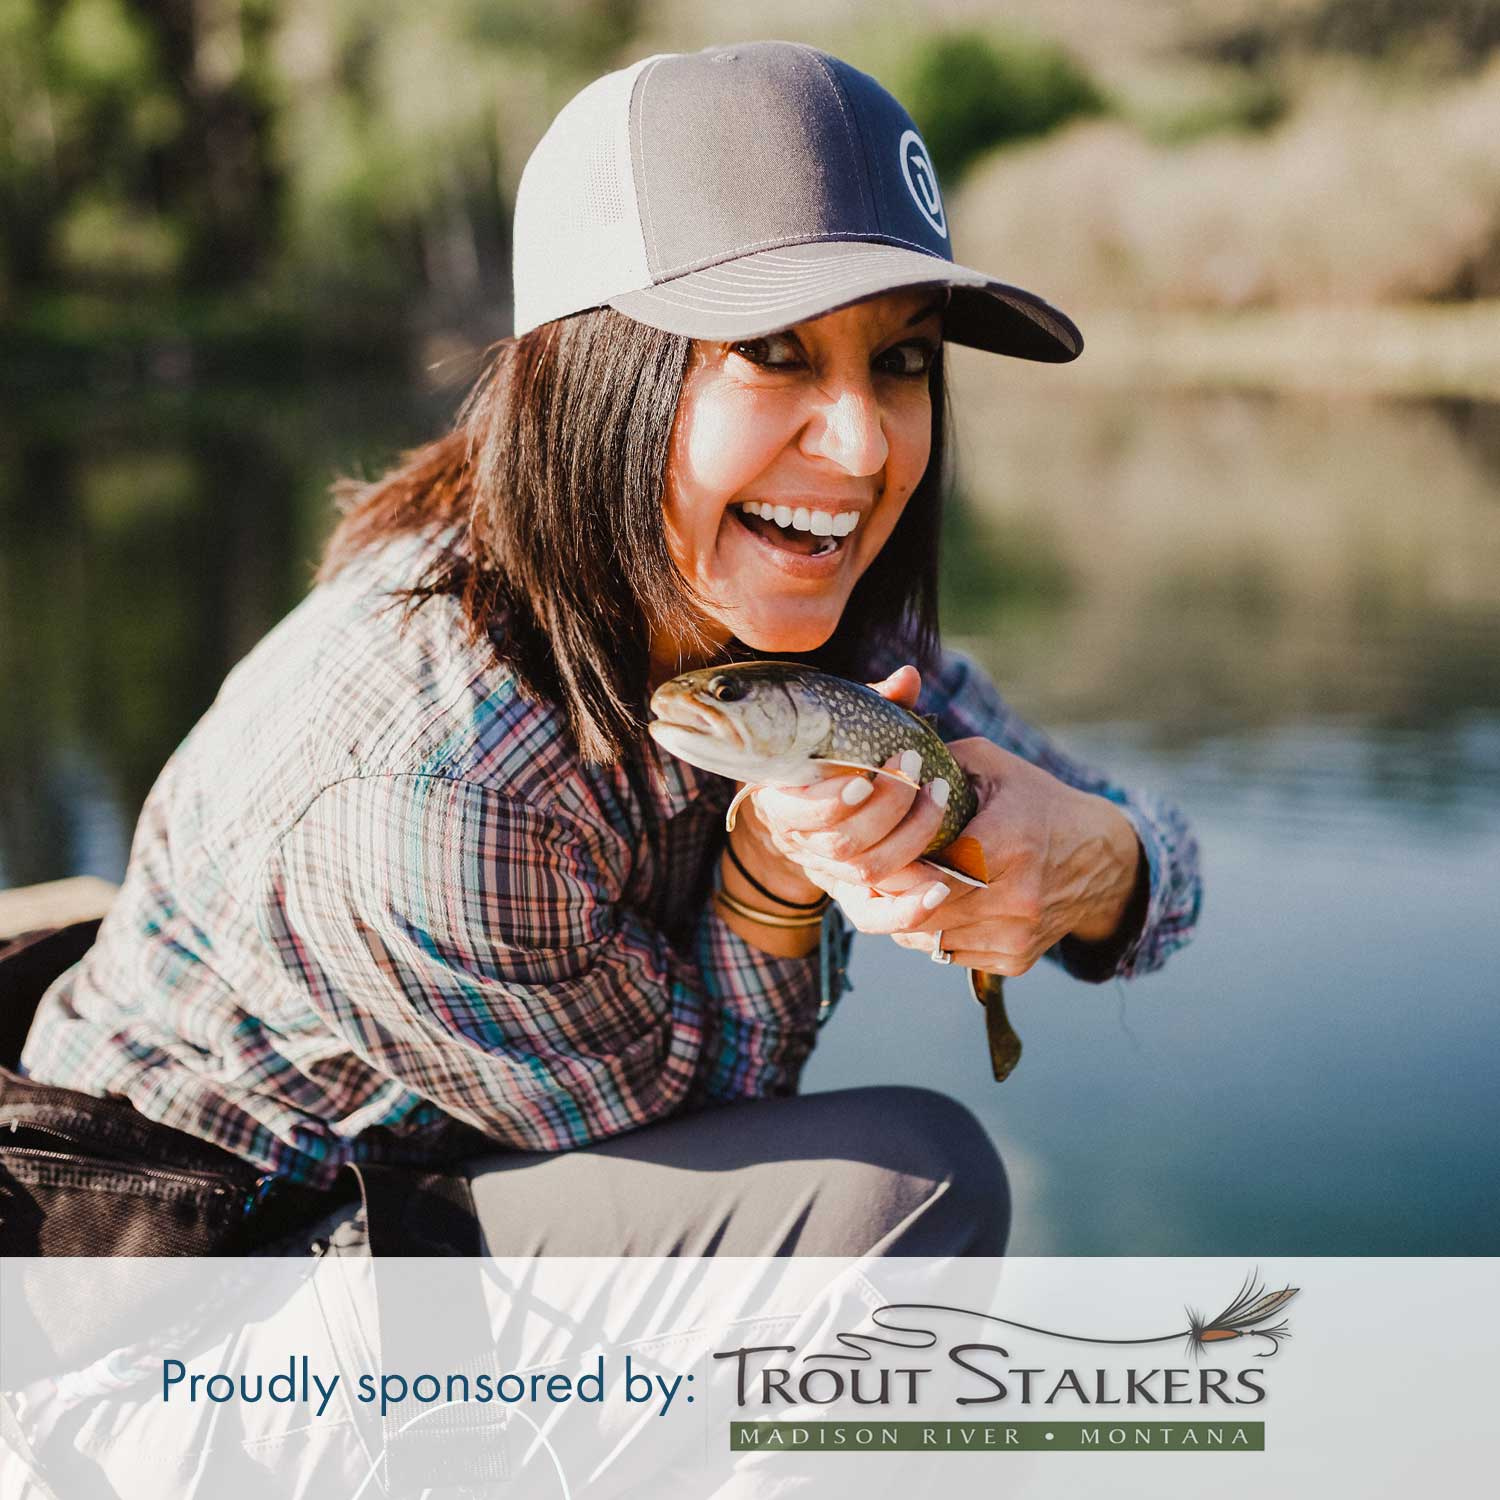 Karen Lum - Karen will help you hone and refine your fishing skills with a special eye to casting and body/movement awareness. Business coach by weekday and fly fisherwoman by weekend, Karen fell in love with fly fishing in college and ended up married to a fishing guide of her own.klumconsulting@gmail.comklumconsulting.com